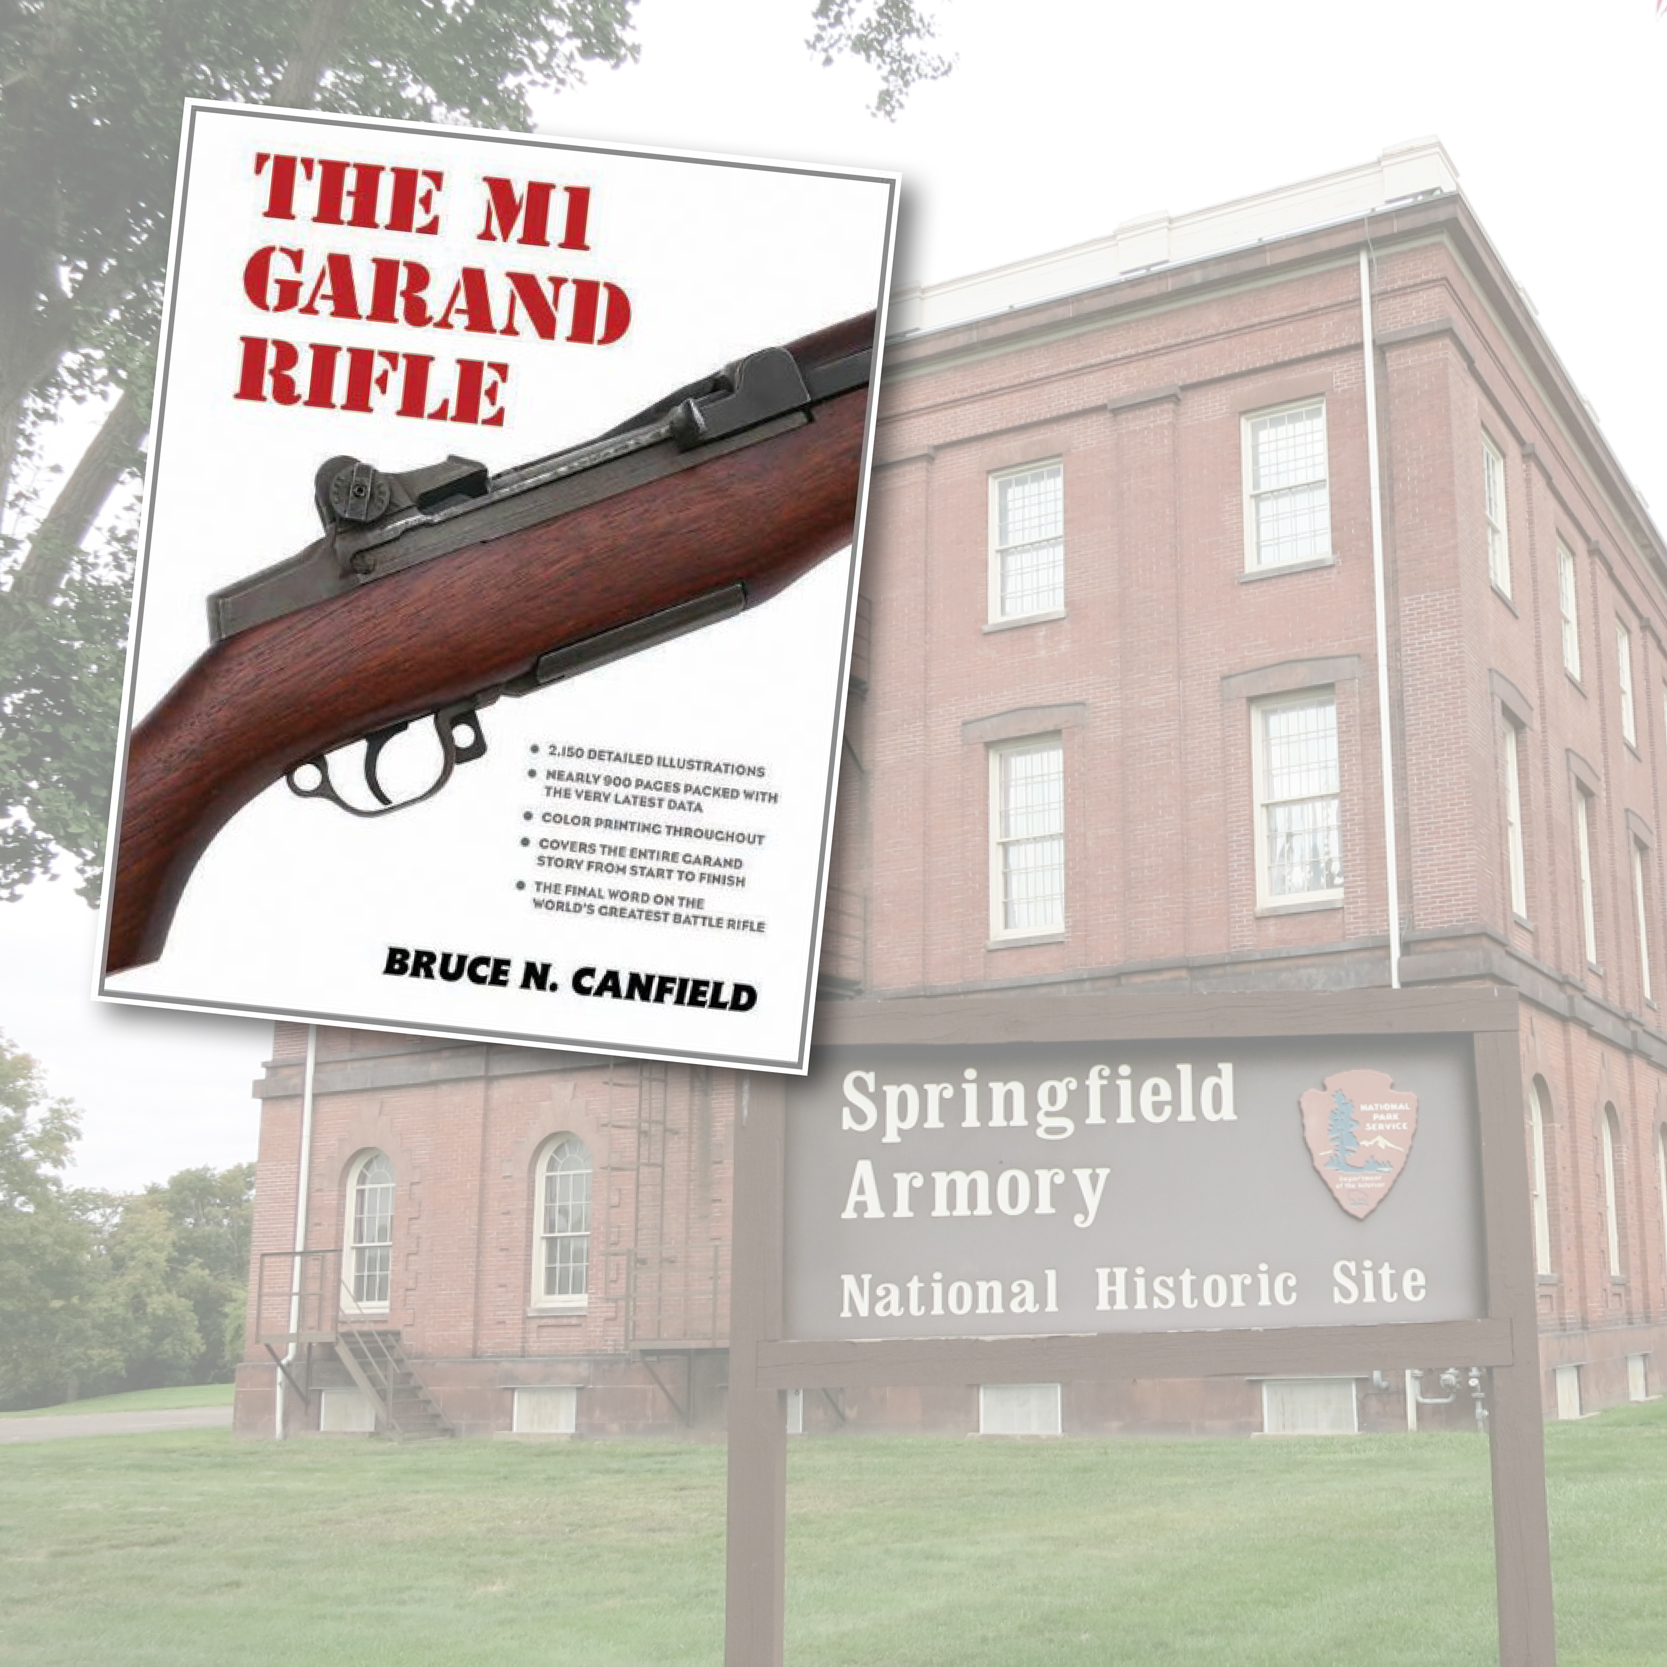 The M1 Garand Rifle's 80th Anniversary Celebration